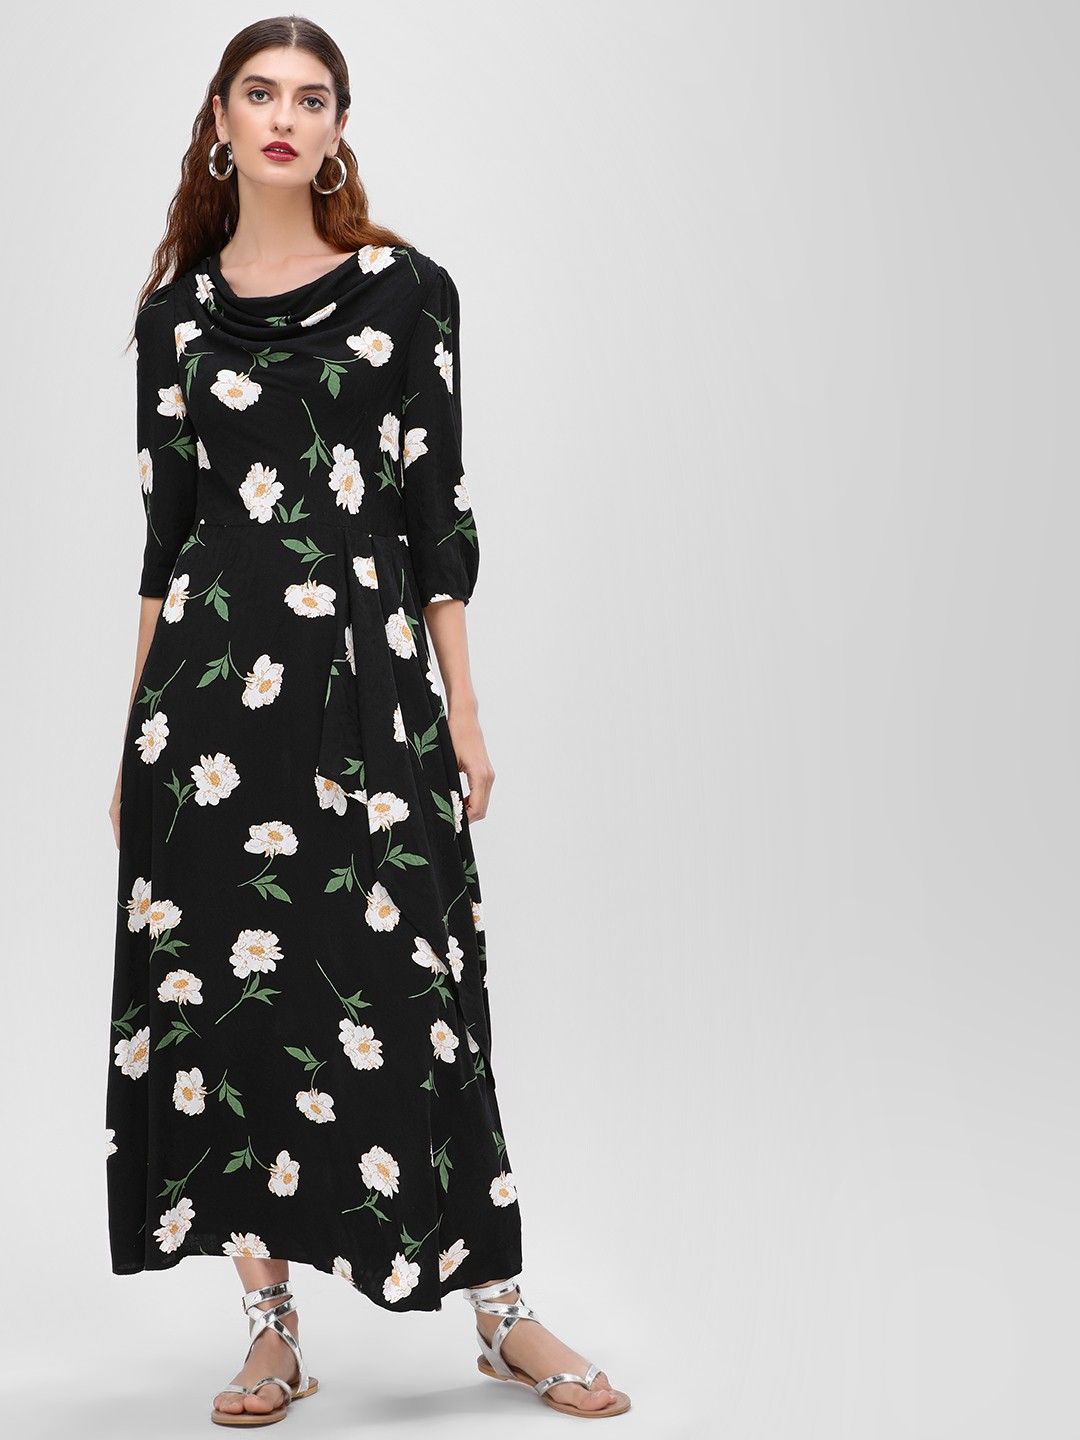 Cover Story Print Floral Printed Maxi Dress 1